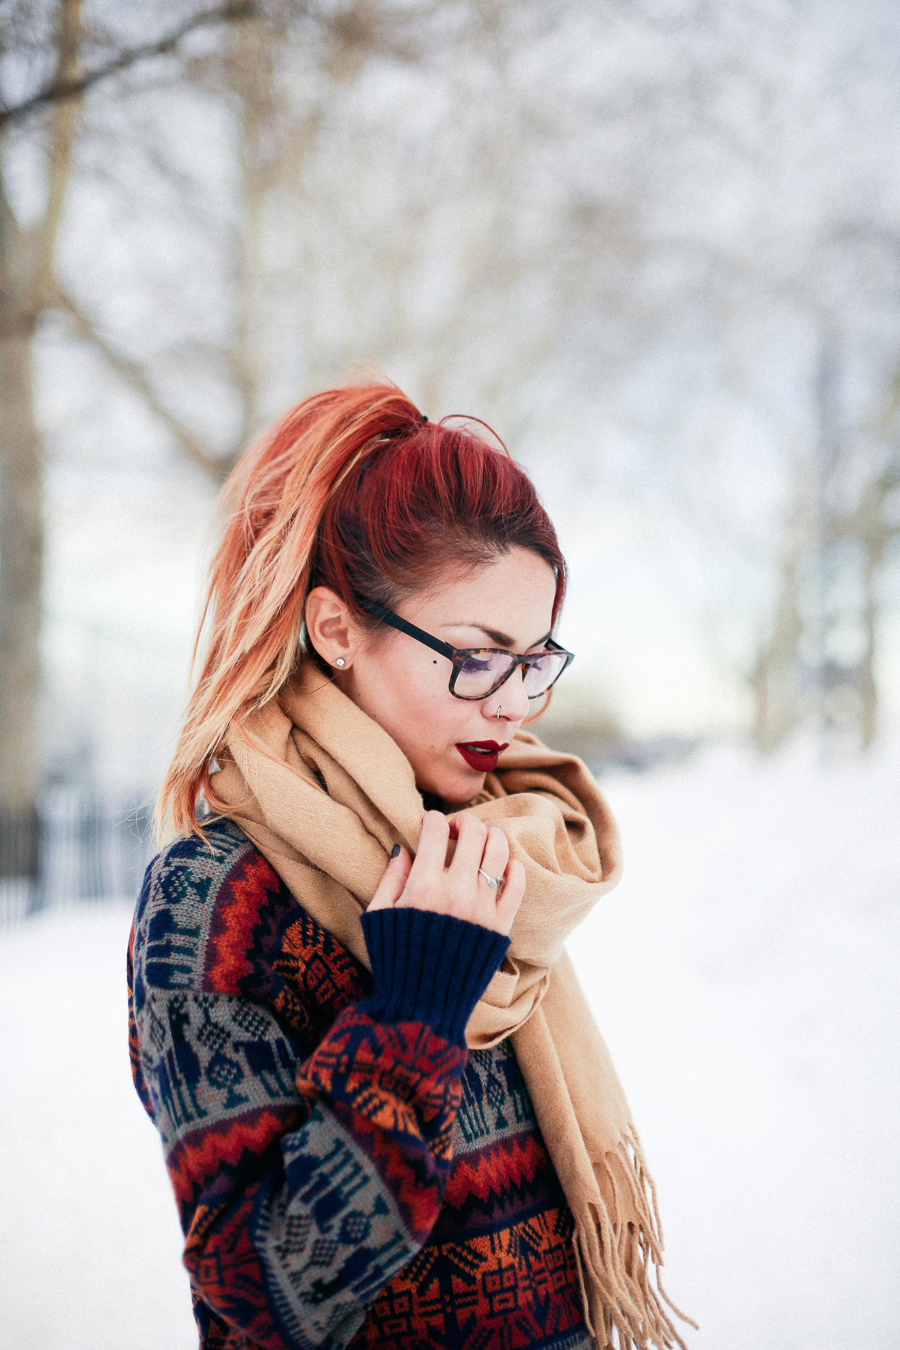 Le Happy wearing Few Moda scarf and eyeglasses